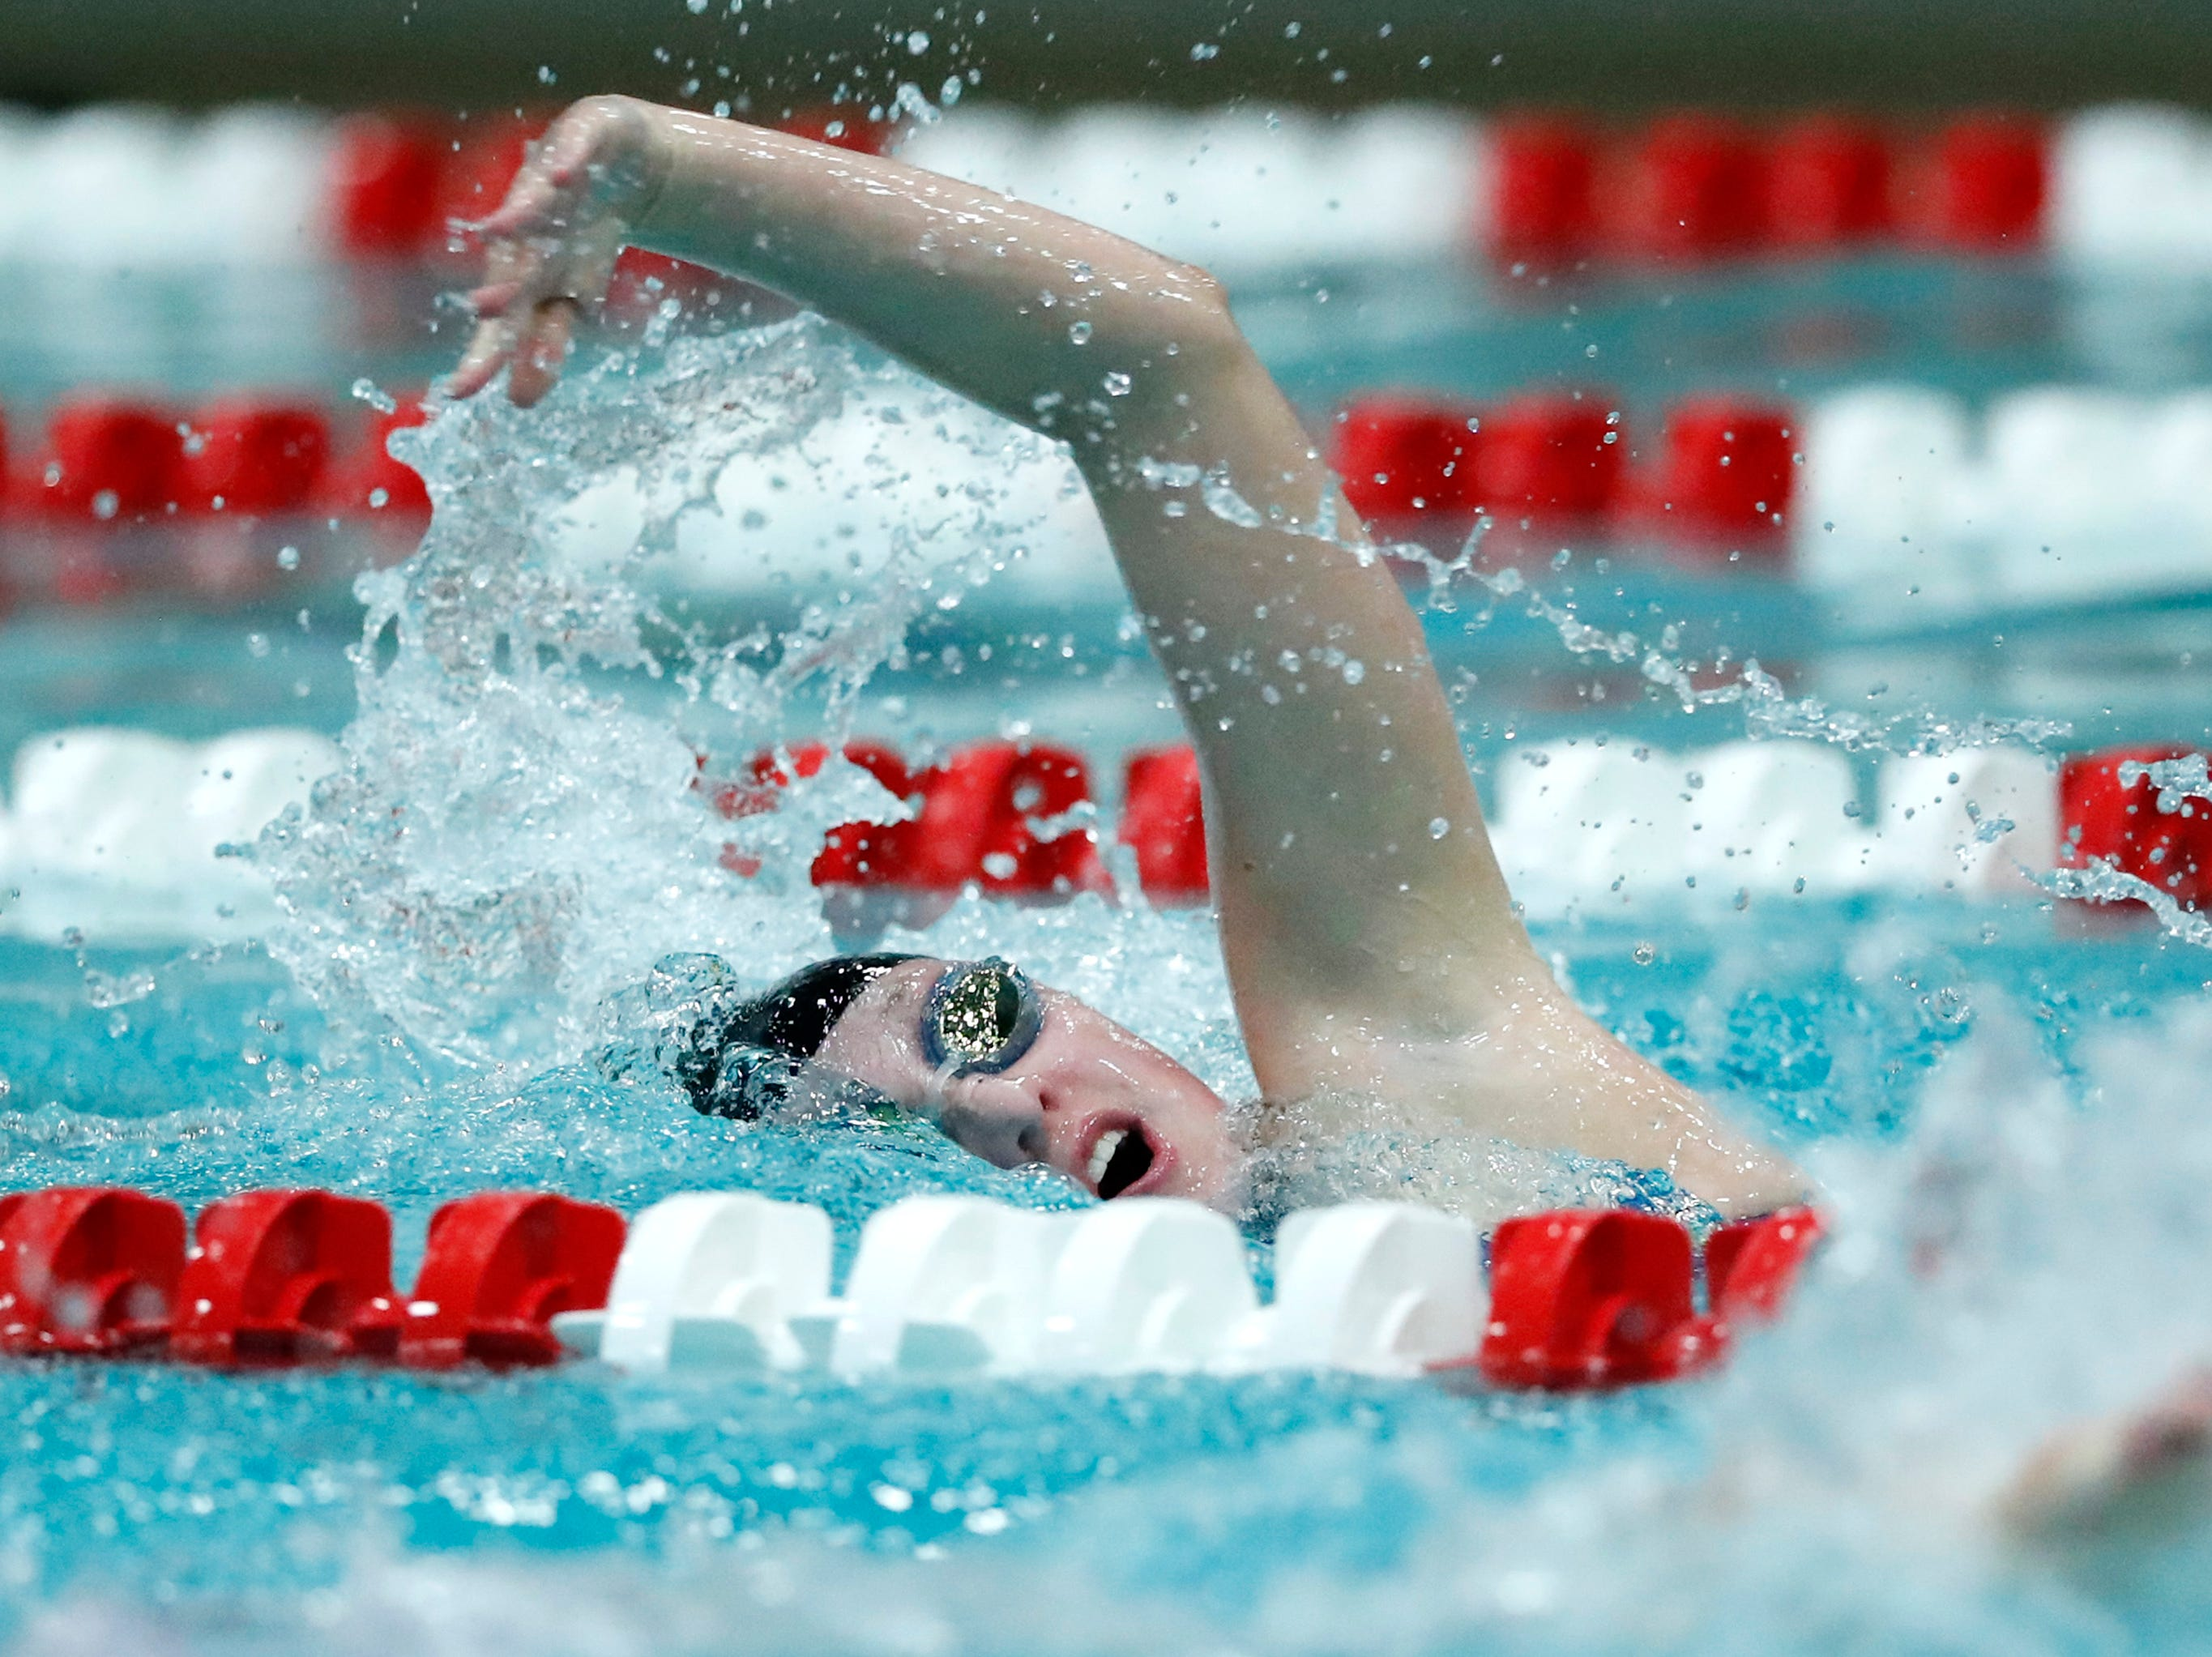 Ashwaubenon's Sydney Pop races in the 200 yard freestyle during the WIAA Division 2 State Swimming and Diving meet Friday, Nov. 9, 2018, at the UW Natatorium in Madison, Wis.Danny Damiani/USA TODAY NETWORK-Wisconsin